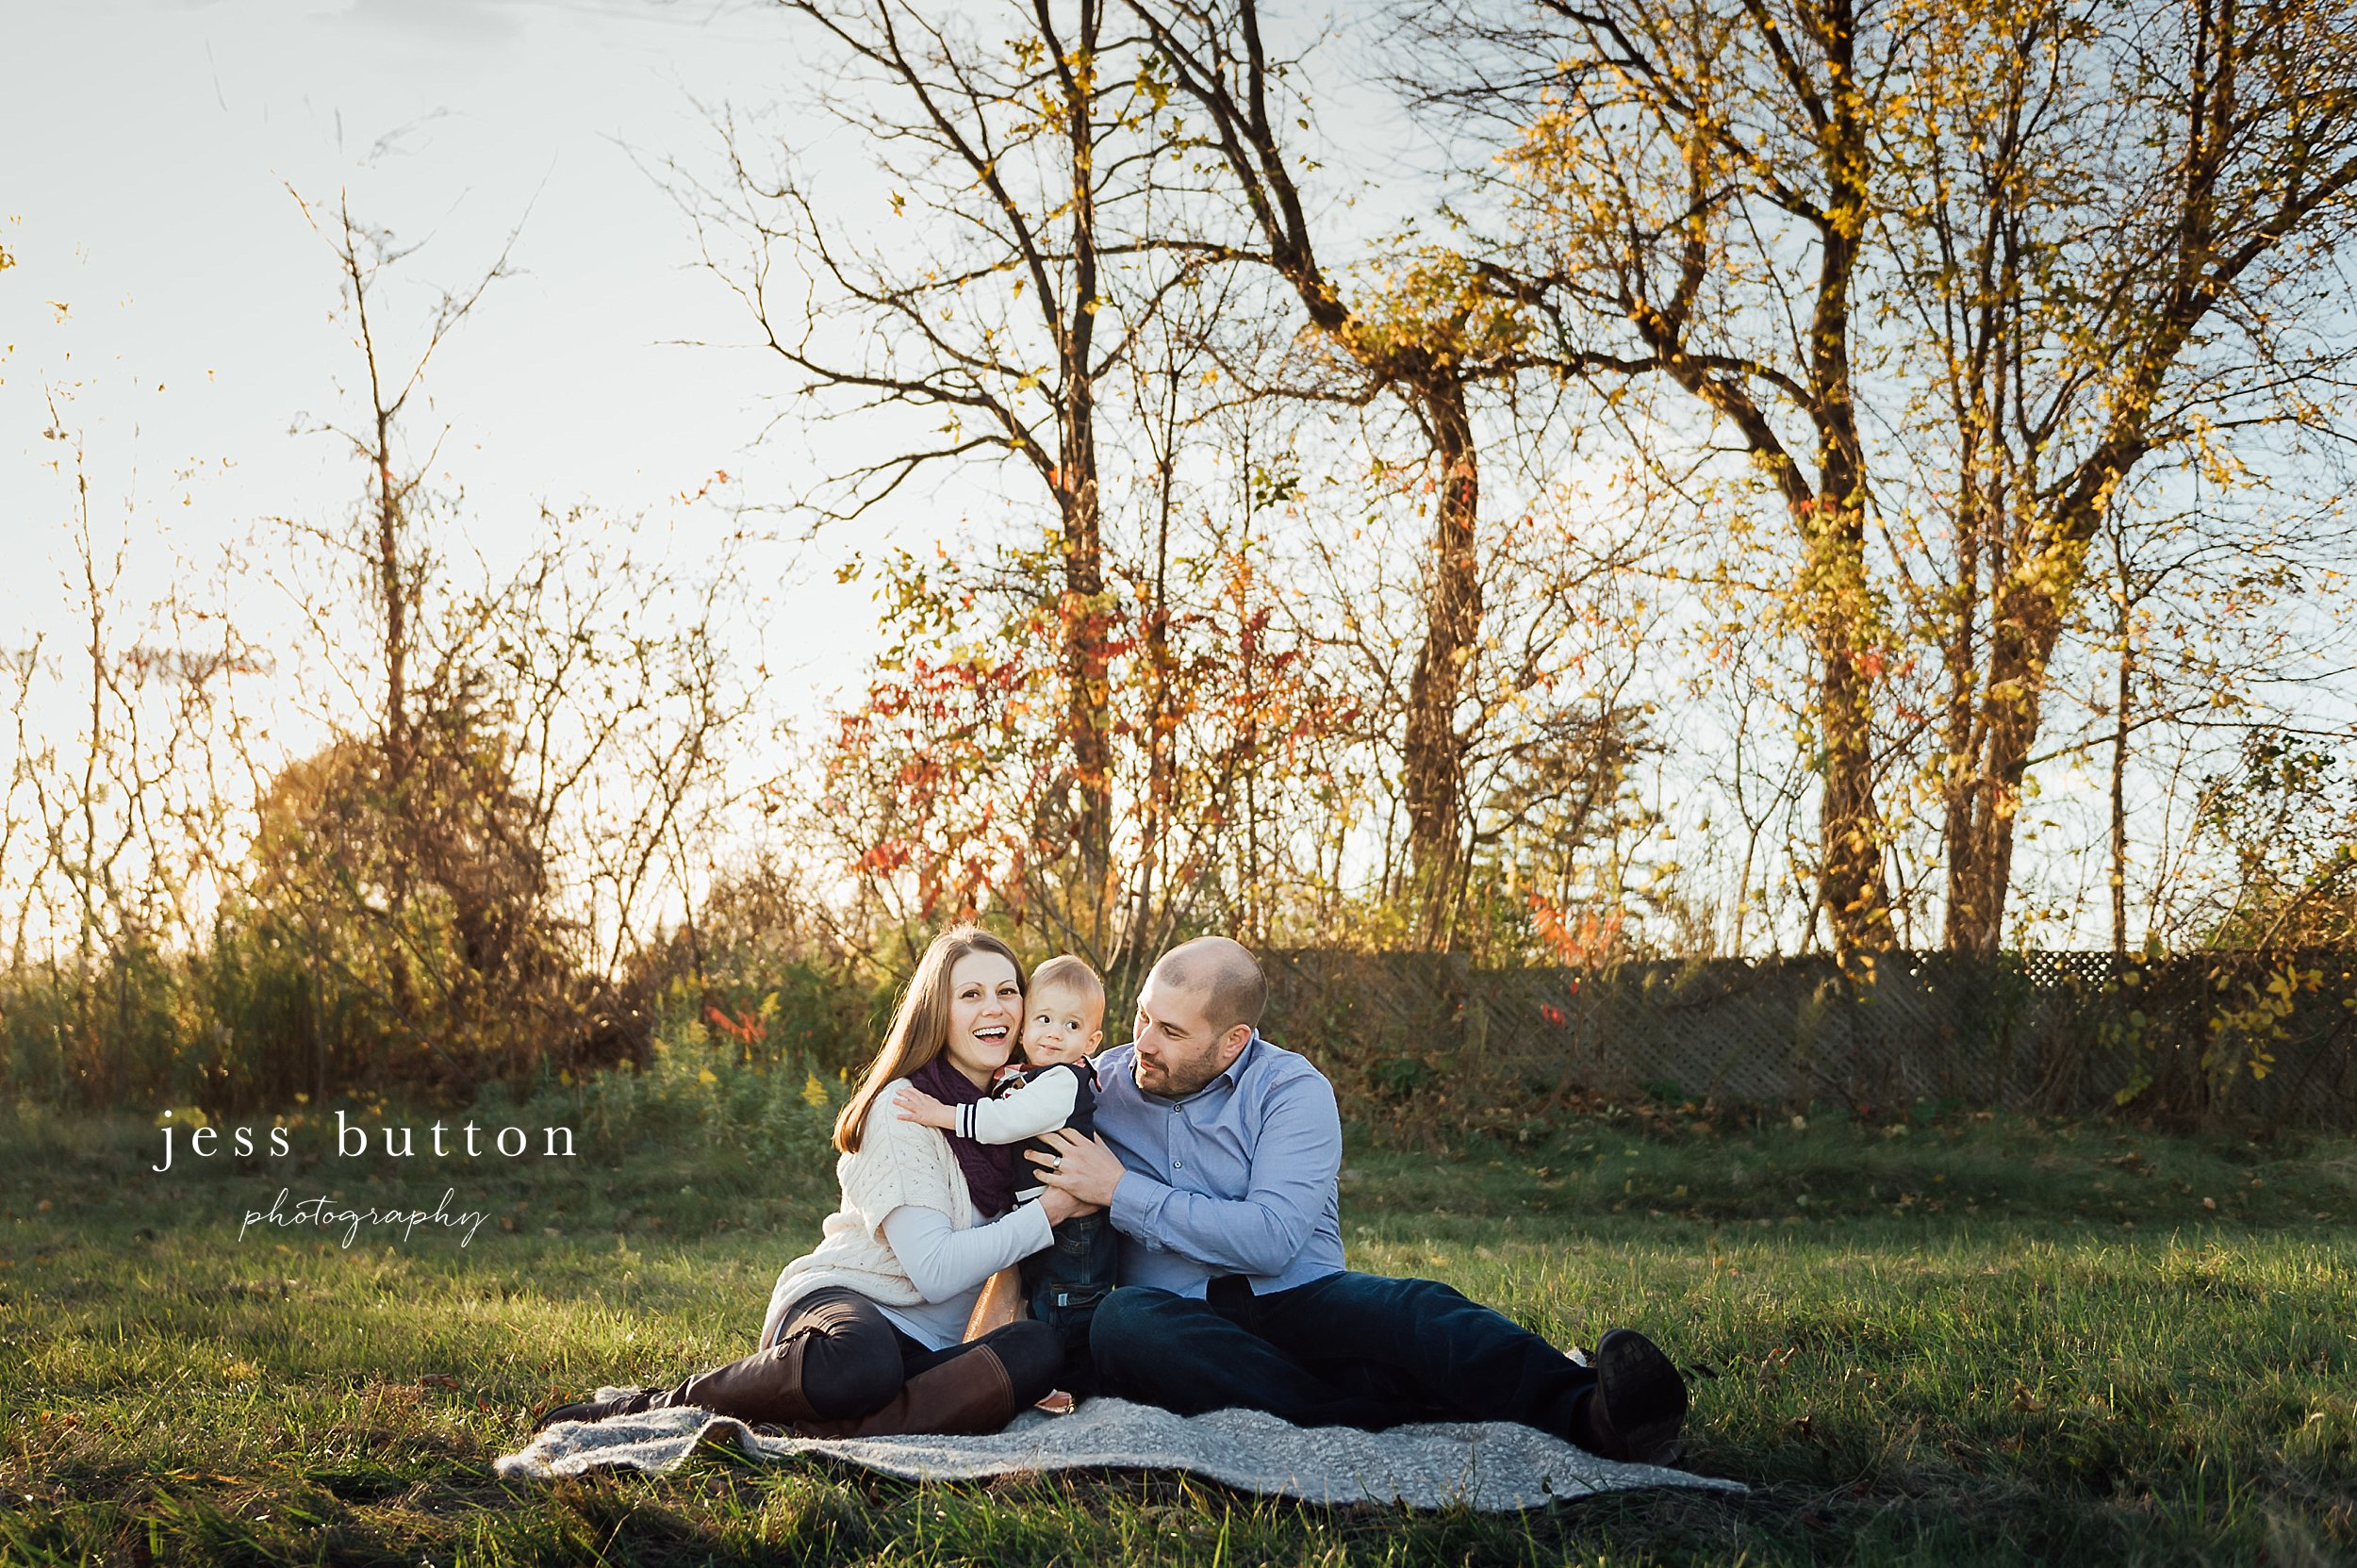 Niagara Family Photographer - photos at home in St Catharines - parents with 10 month old baby boy in field